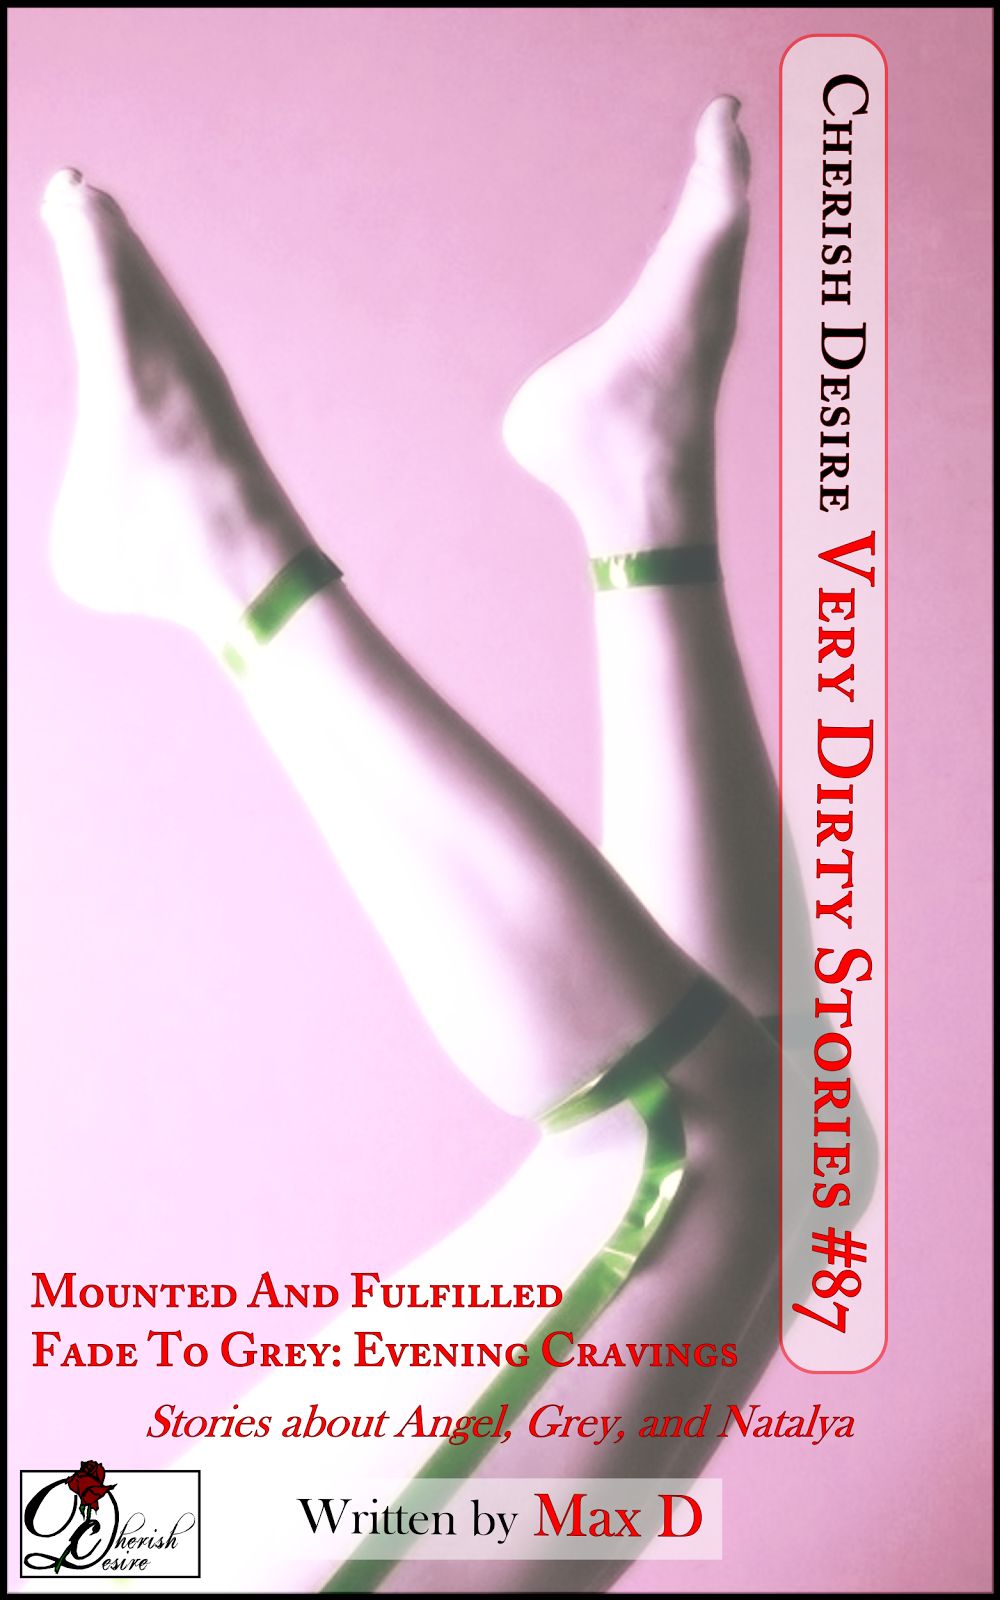 Cherish Desire: Very Dirty Stories #87, Max D, erotica